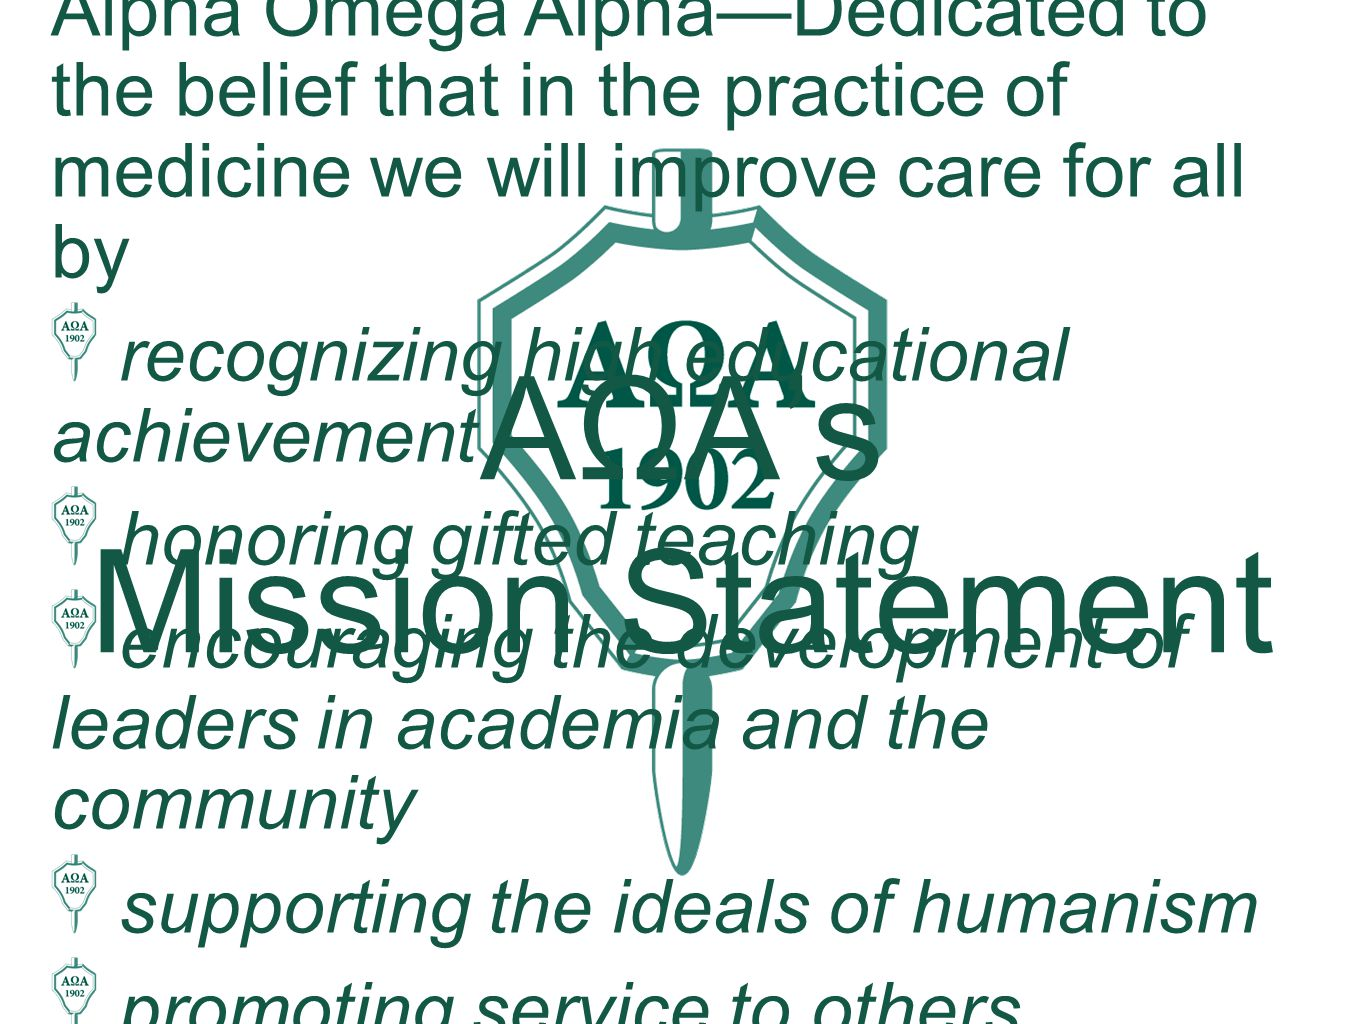 Alpha Omega Alpha—Dedicated to the belief that in the practice of medicine we will improve care for all by recognizing high educational achievement honoring gifted teaching encouraging the development of leaders in academia and the community supporting the ideals of humanism promoting service to others AΩA's Mission Statement